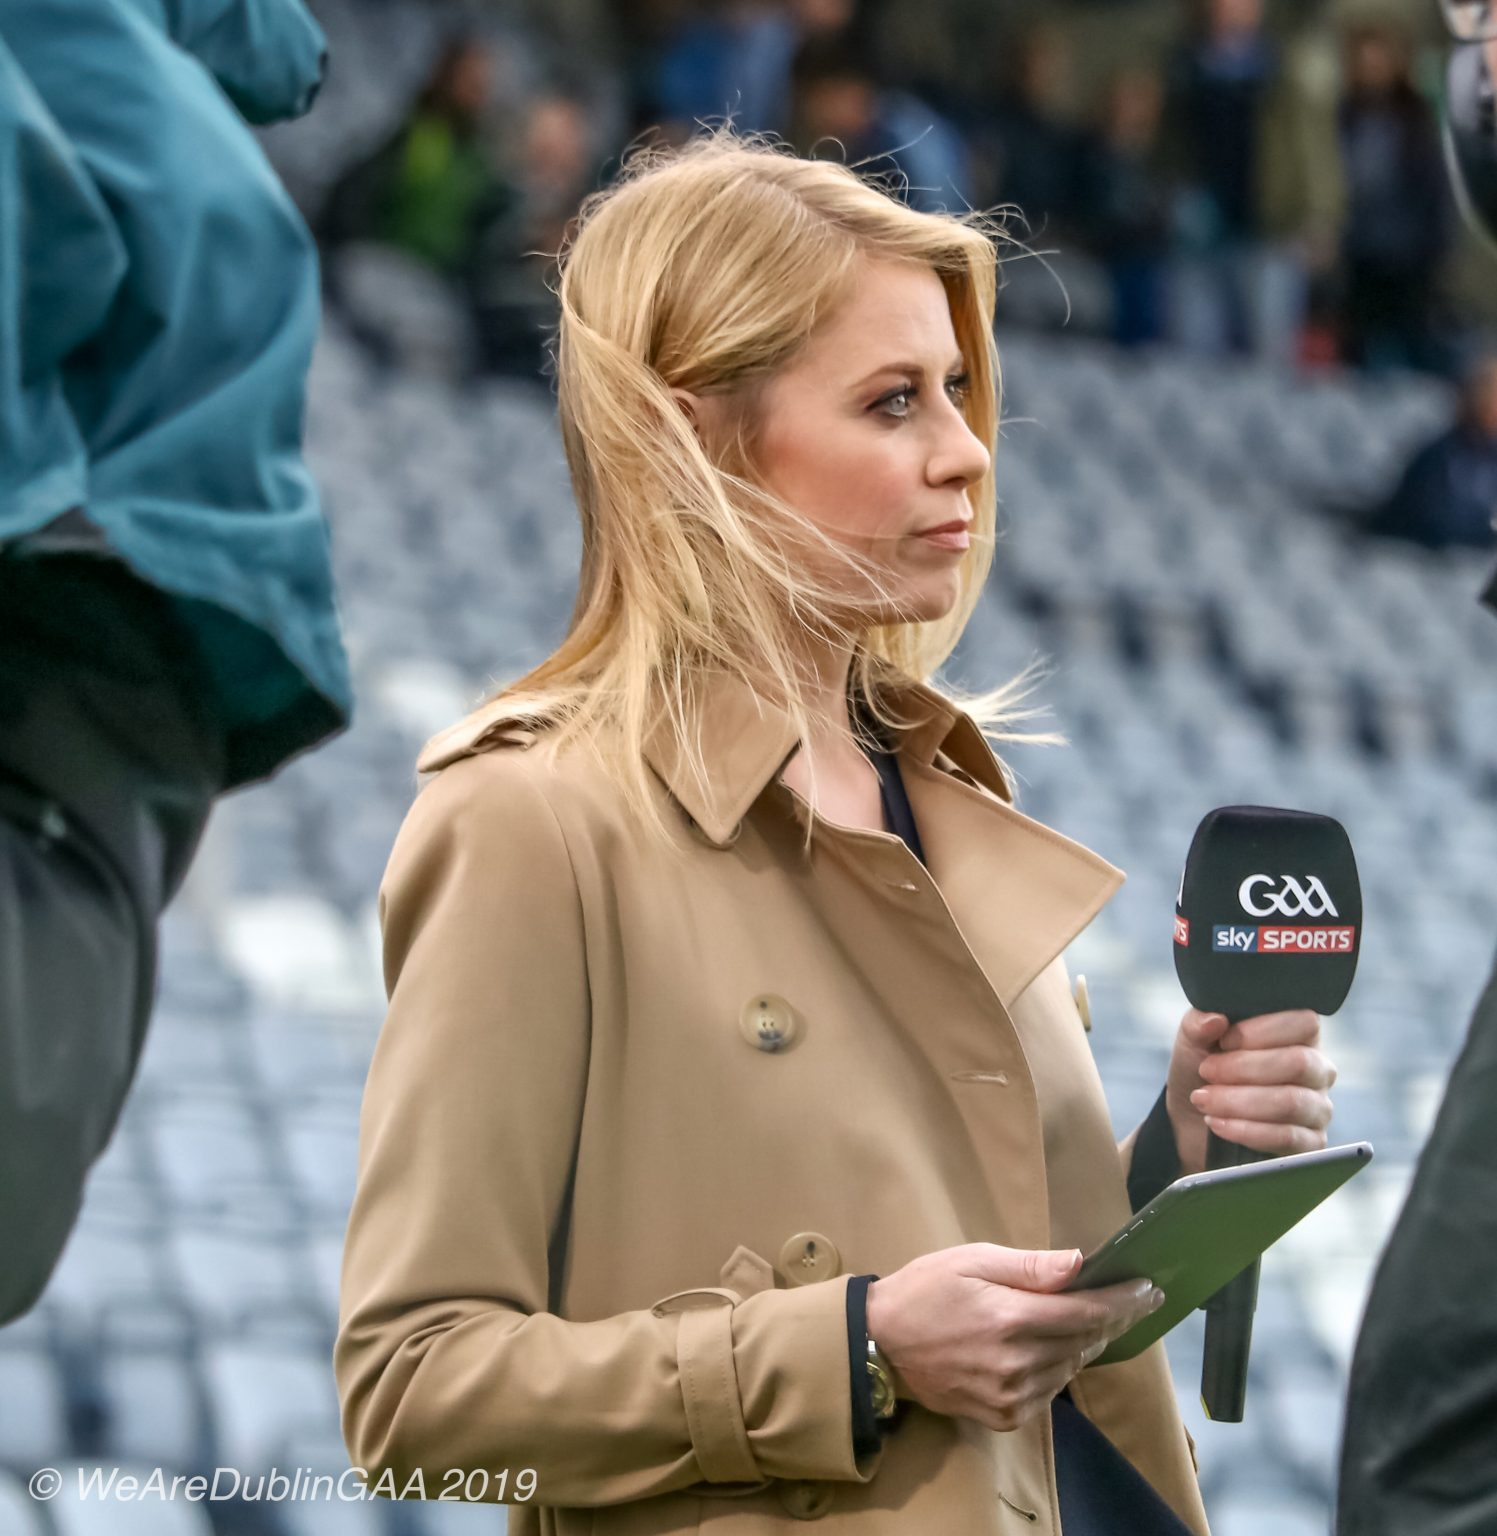 Sky Sports female presenter in a beige coat holding a microphone, Sky Sports 2019 GAA coverage is announced